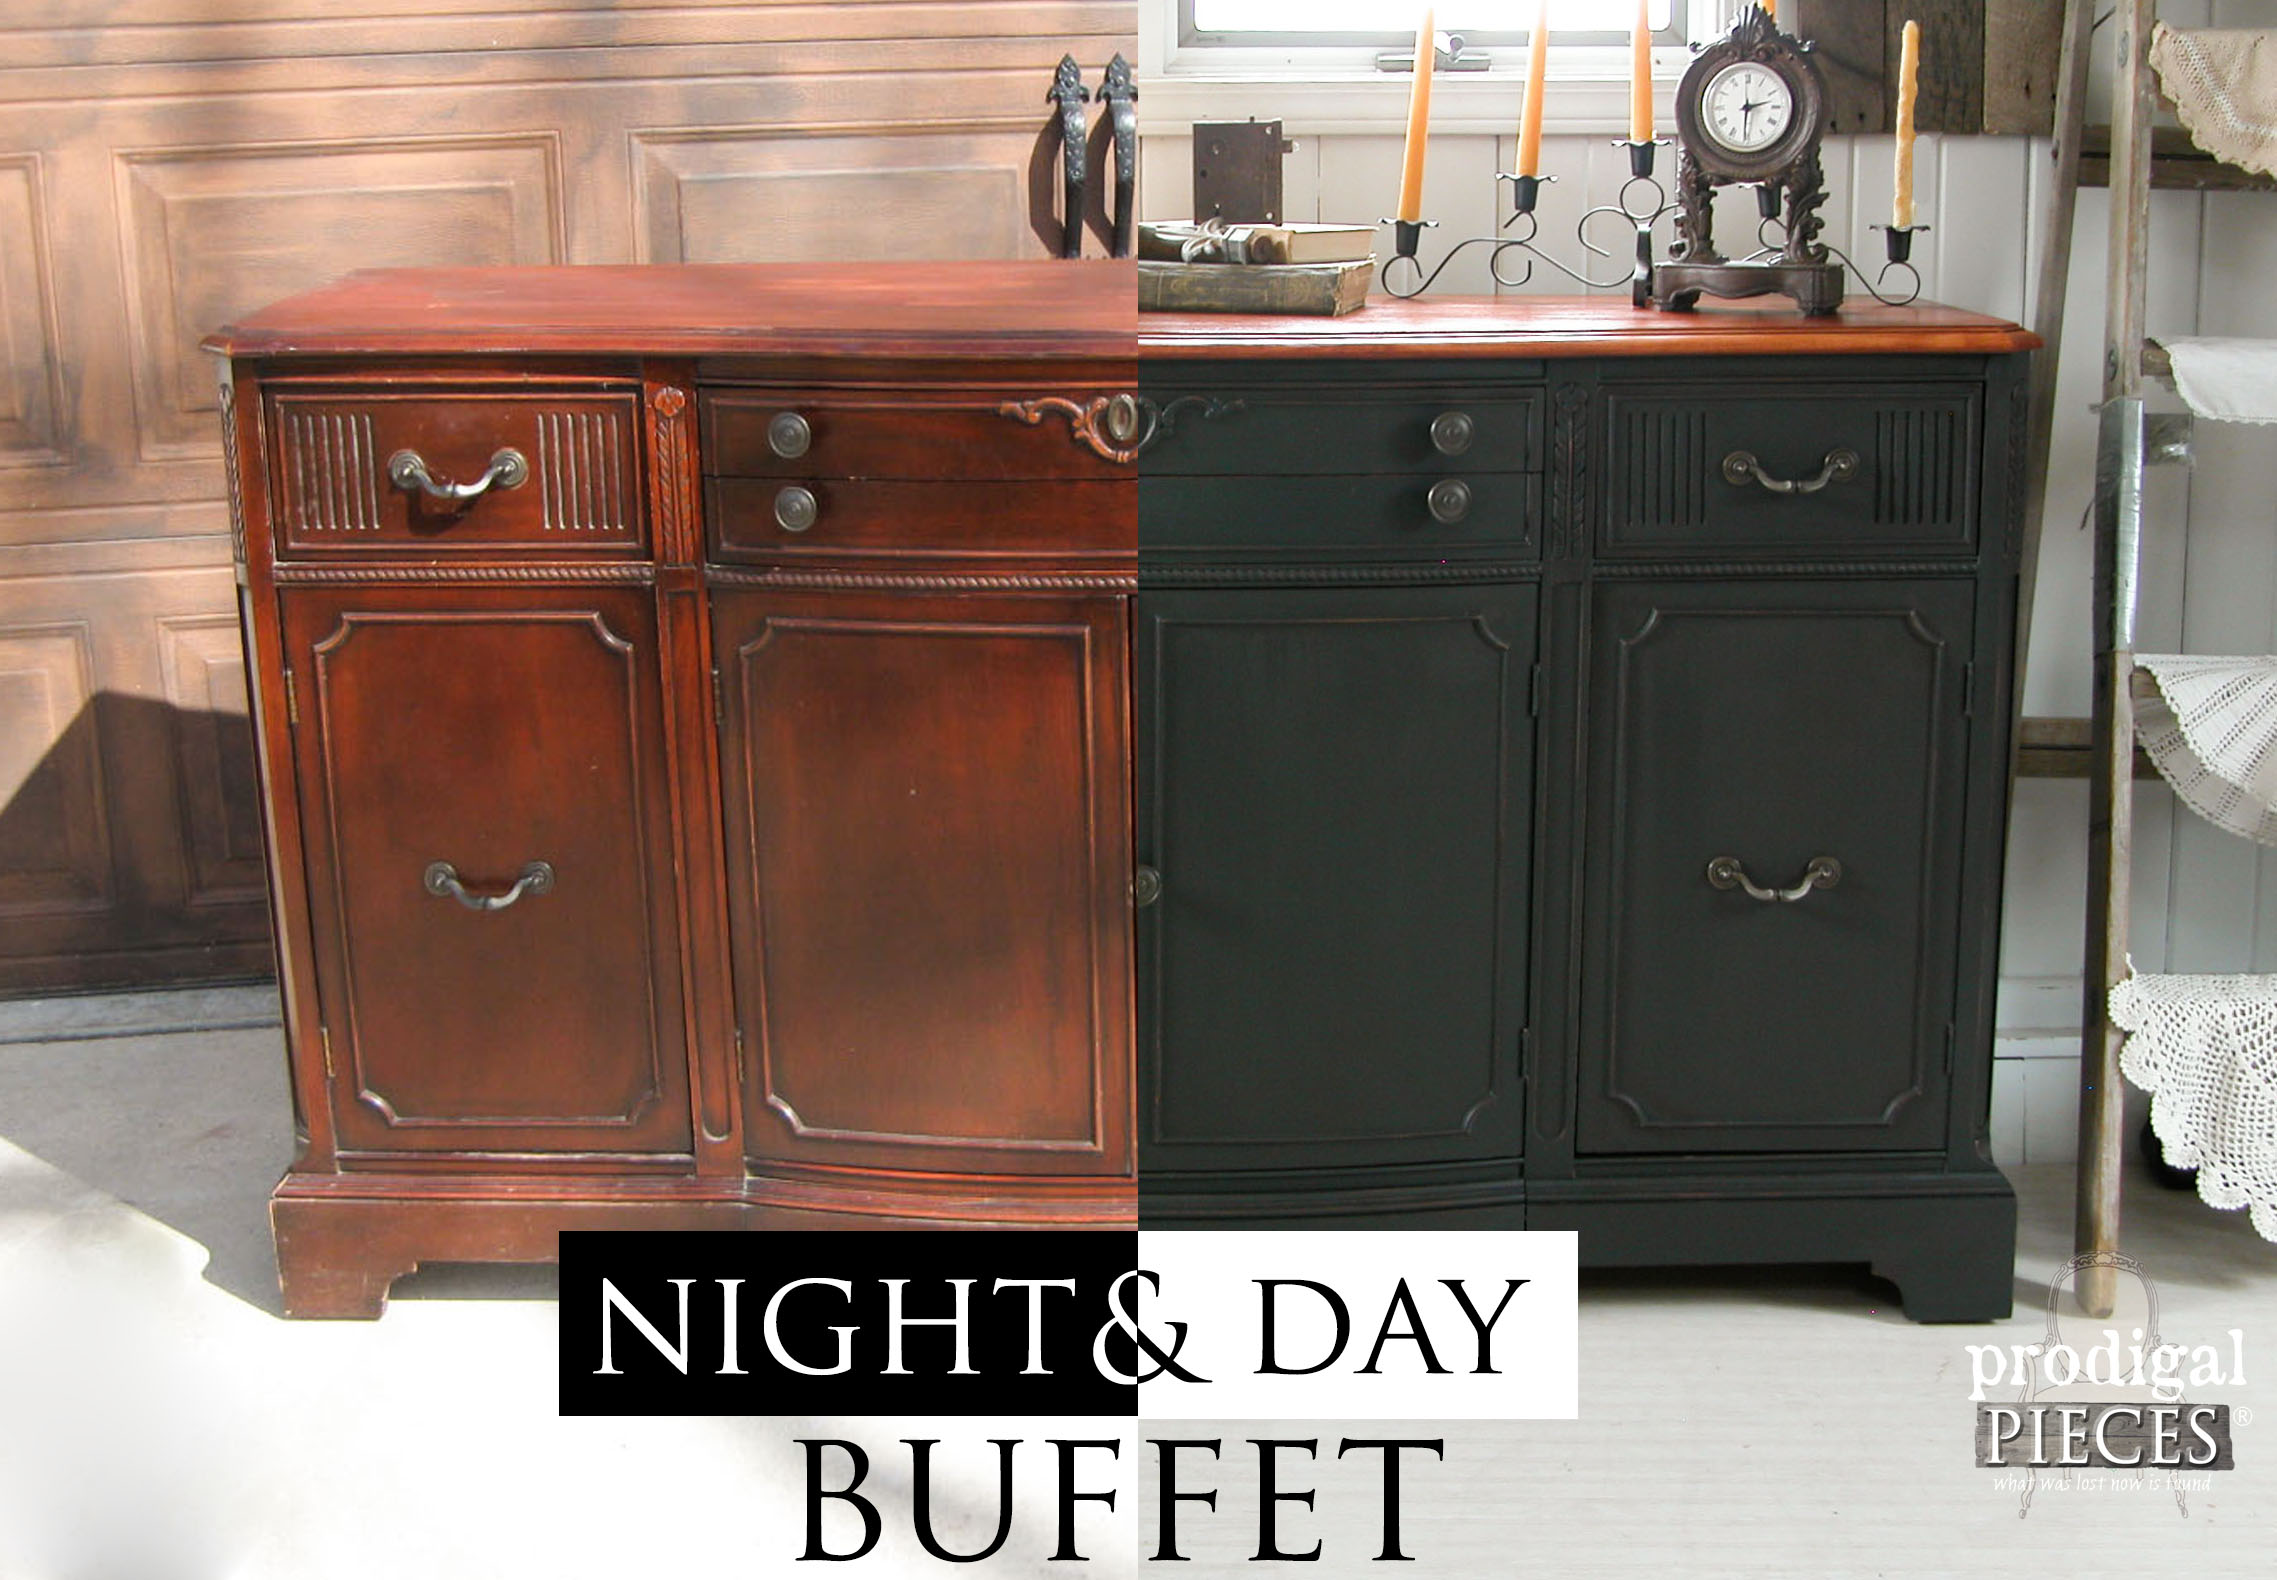 Vintage Buffet Gets Night and Day Makeover by Prodigal Pieces | www.prodigalpieces.com